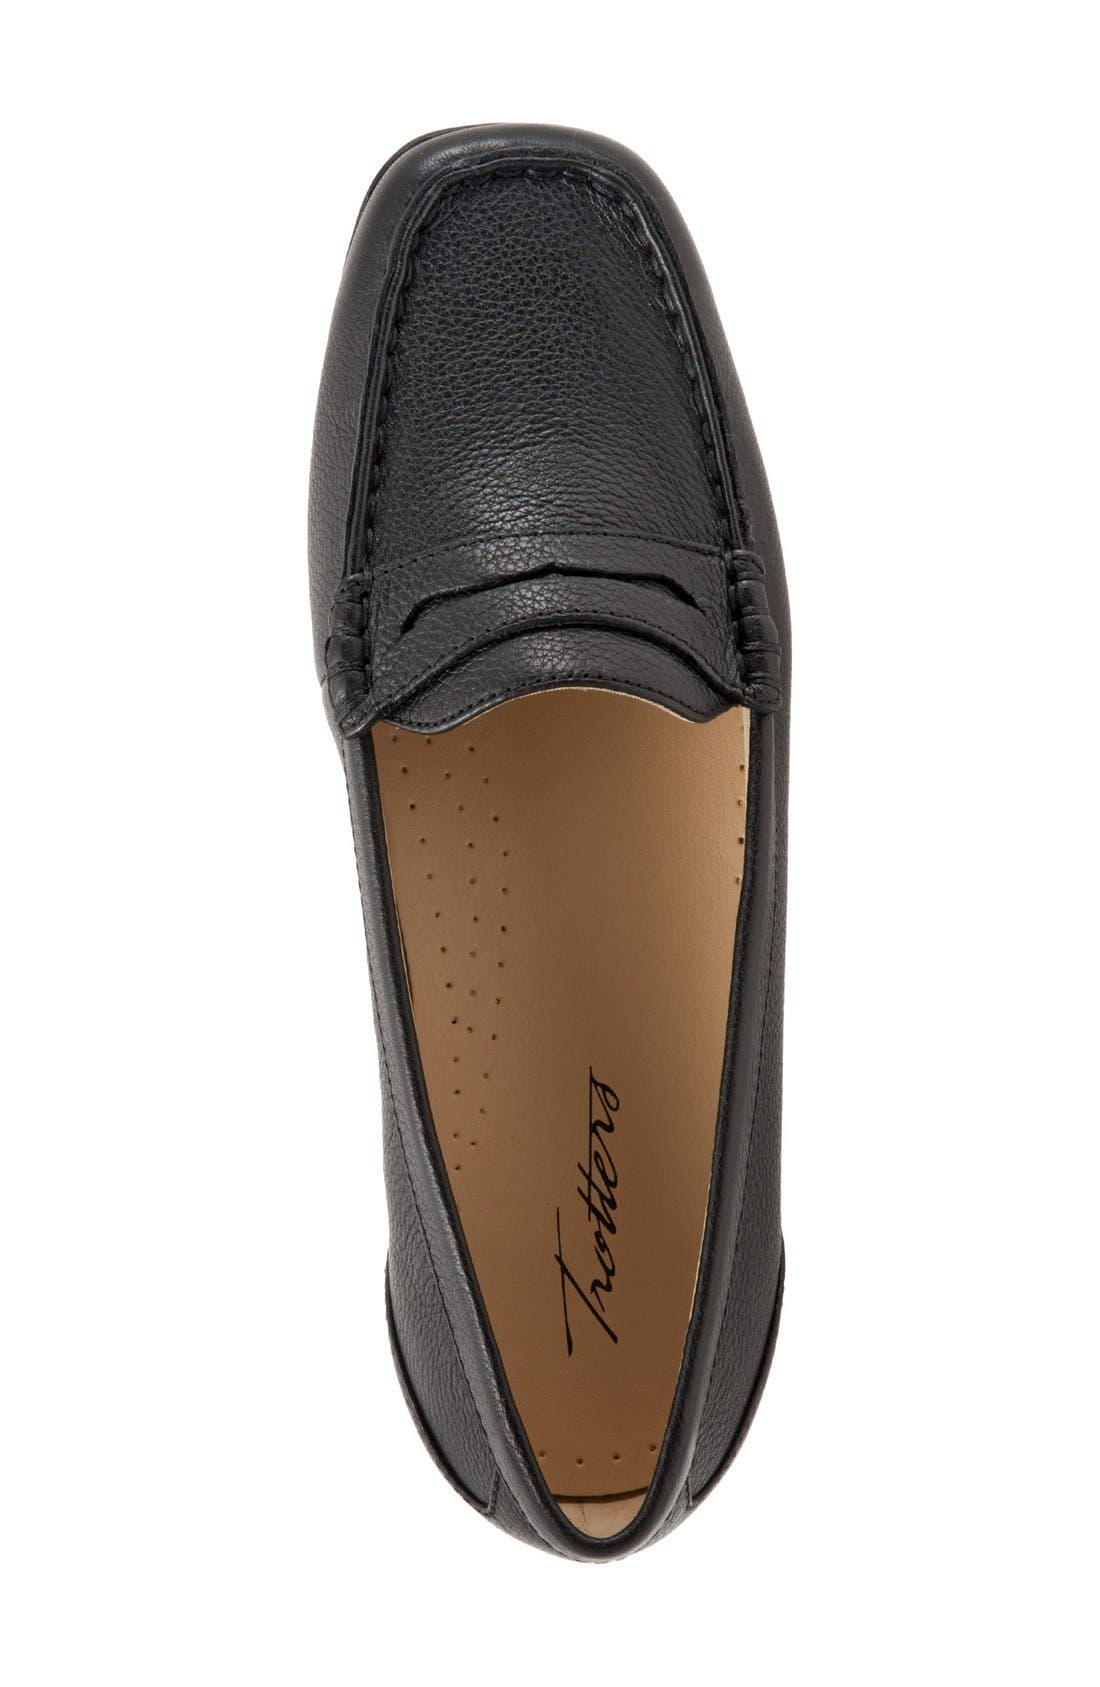 'Staci' Penny Loafer,                             Alternate thumbnail 3, color,                             BLACK LEATHER